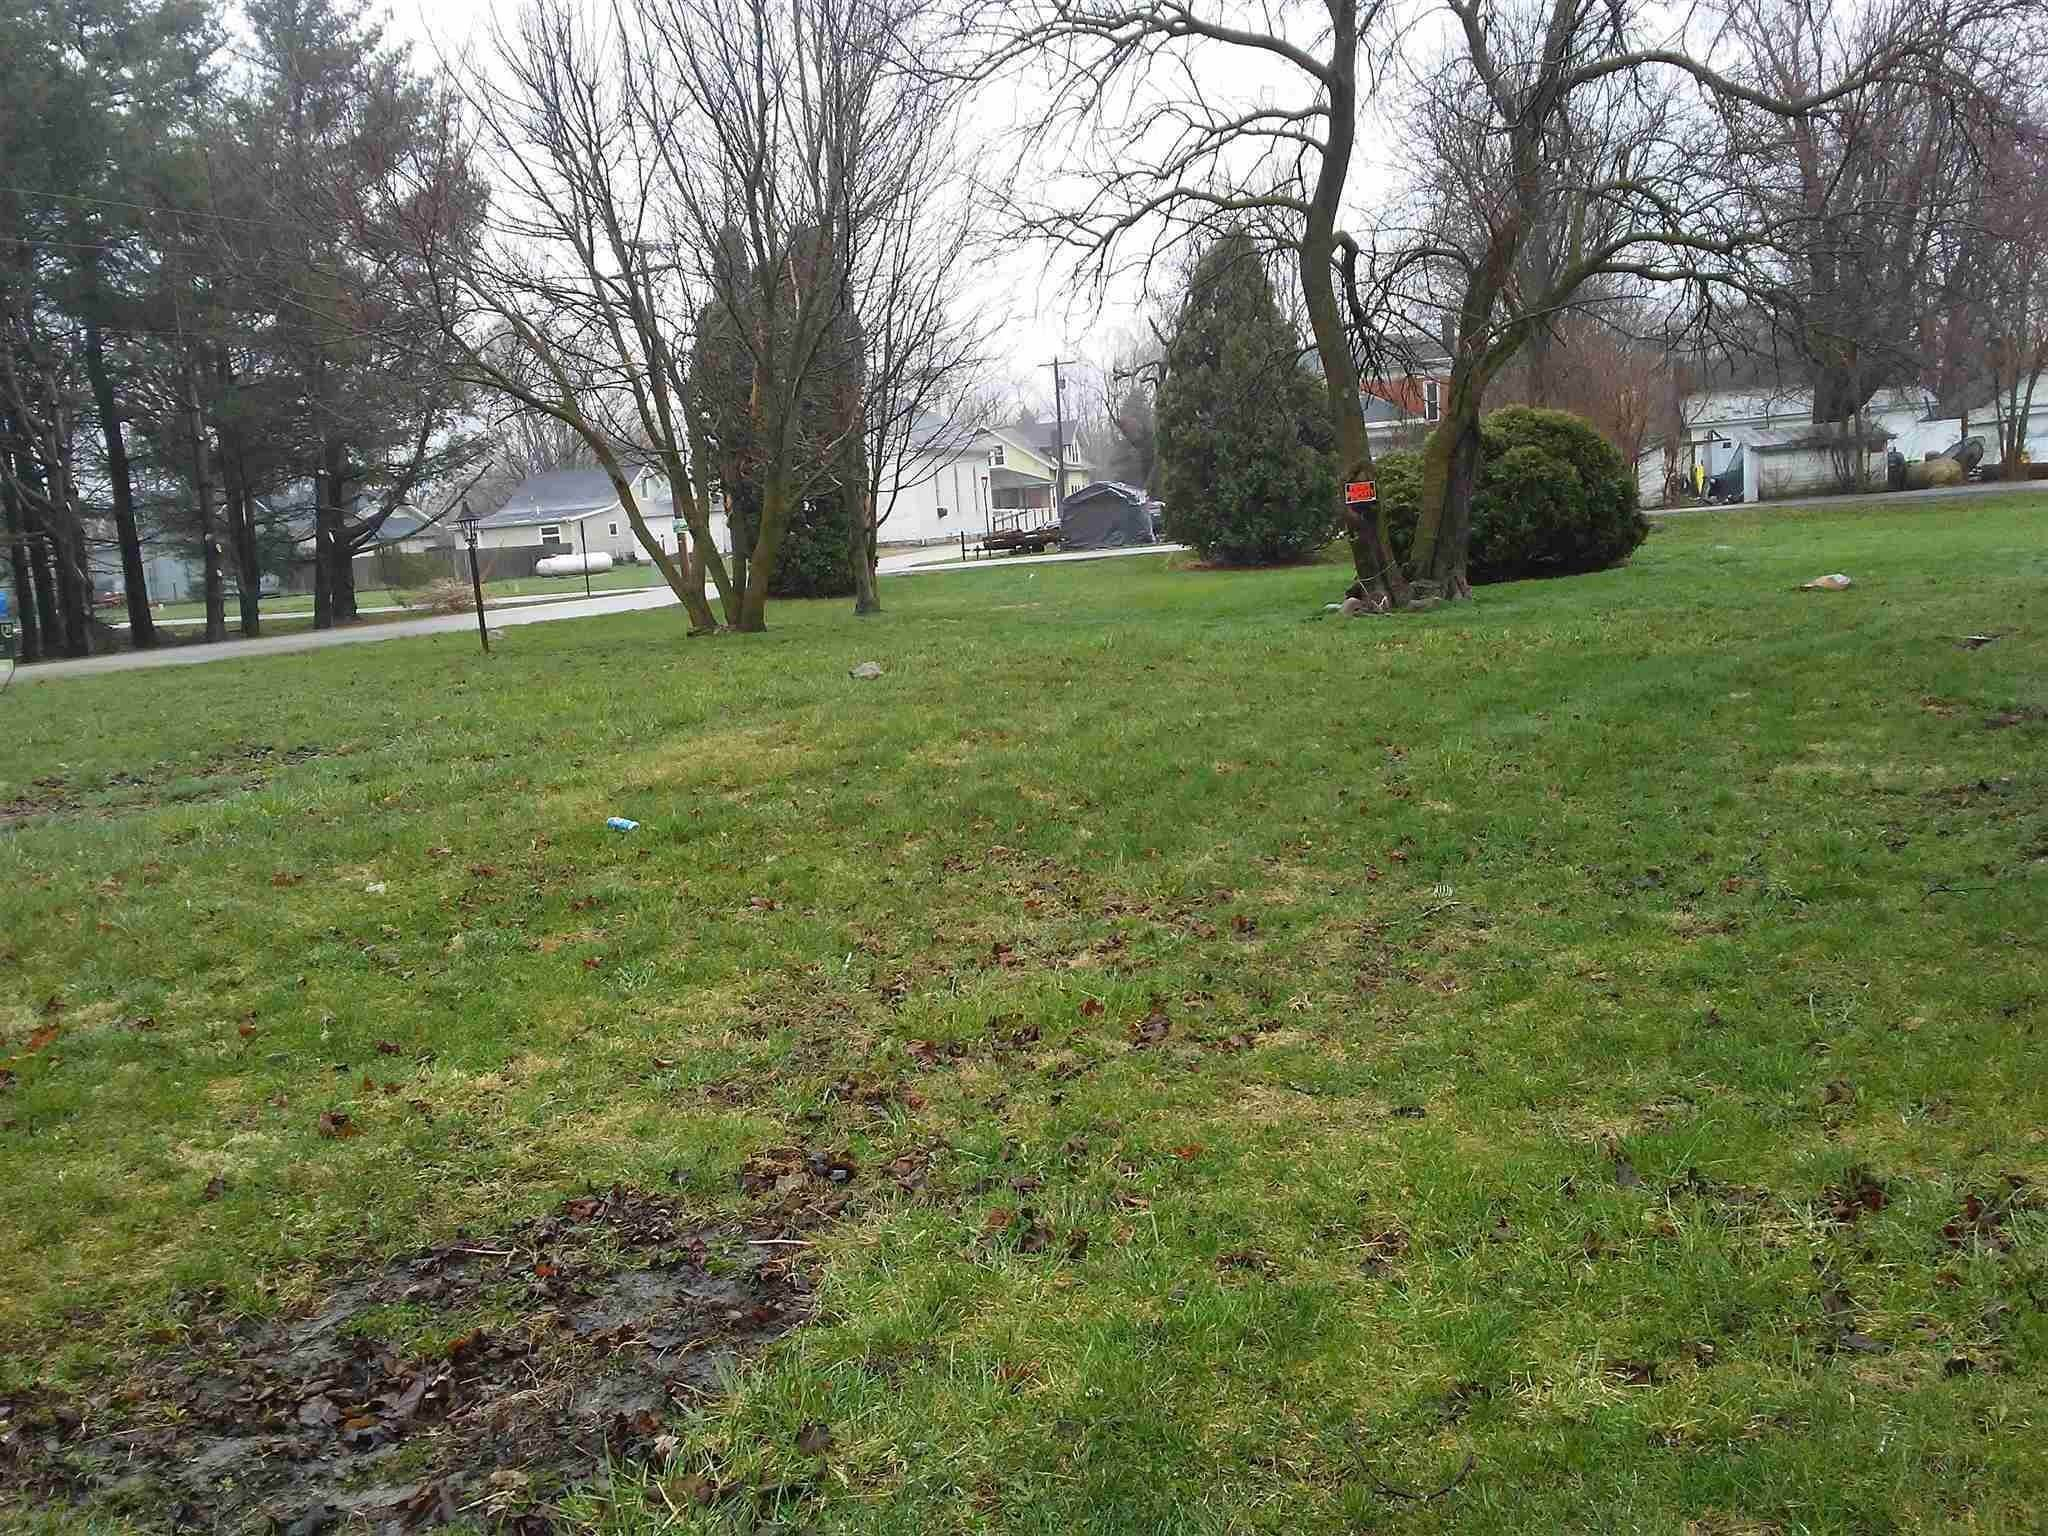 Residential Lots & Land for Sale at 214 E Hammontreet Street Larwill, Indiana 46764 United States